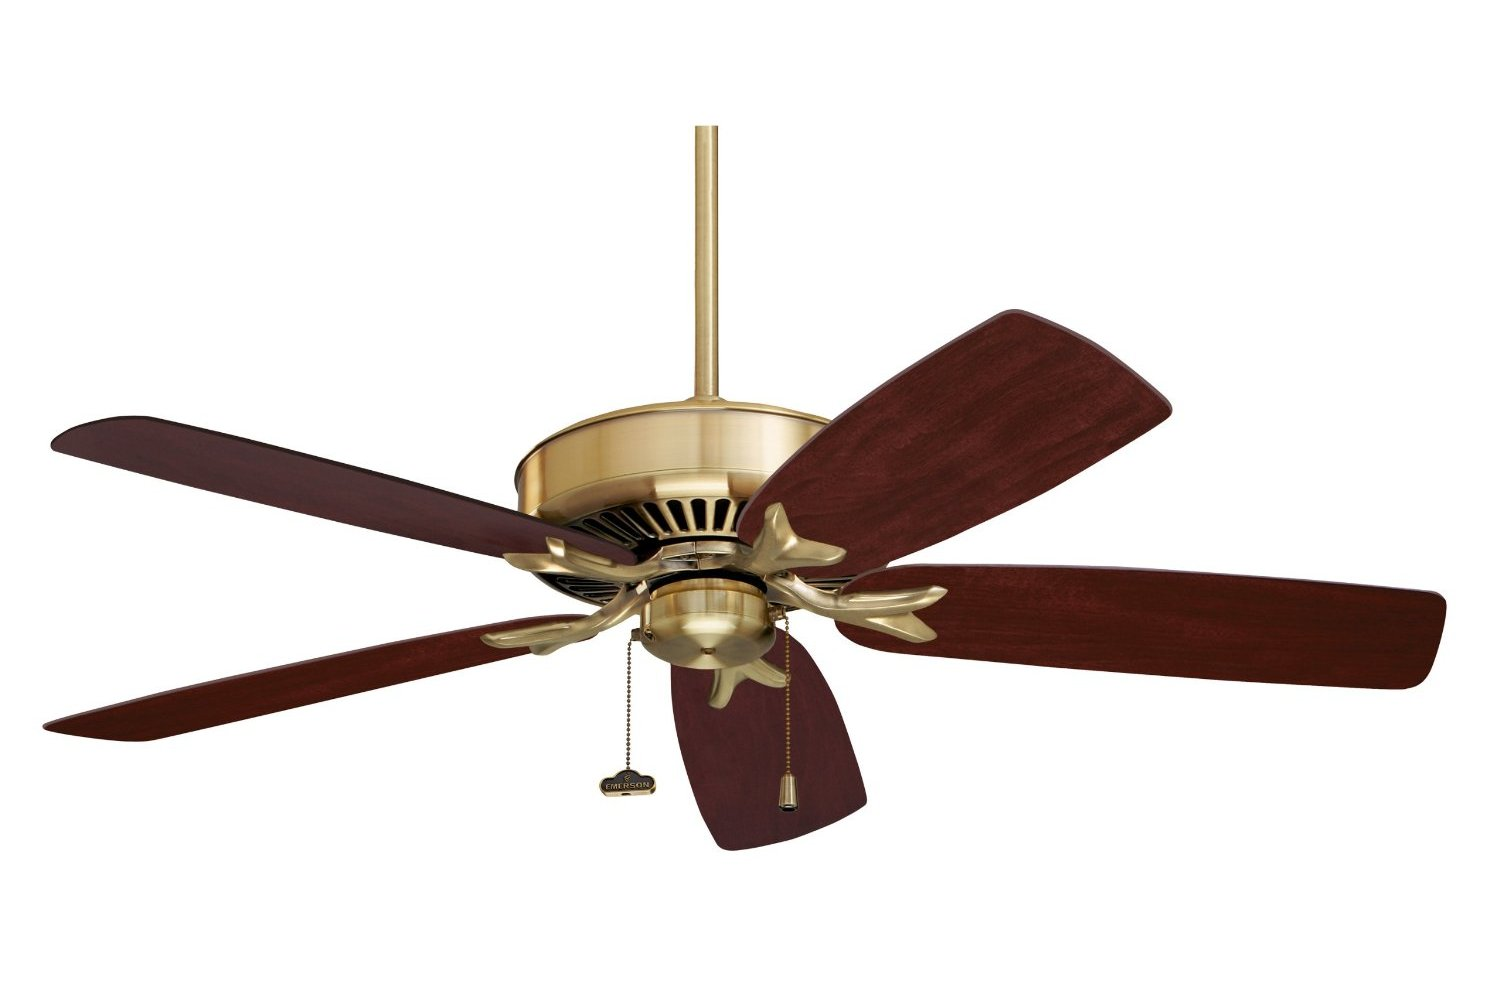 Emerson ceiling fans cf4801gbz premium select indoor ceiling fan cf4801 premium select ceiling fan aloadofball Image collections